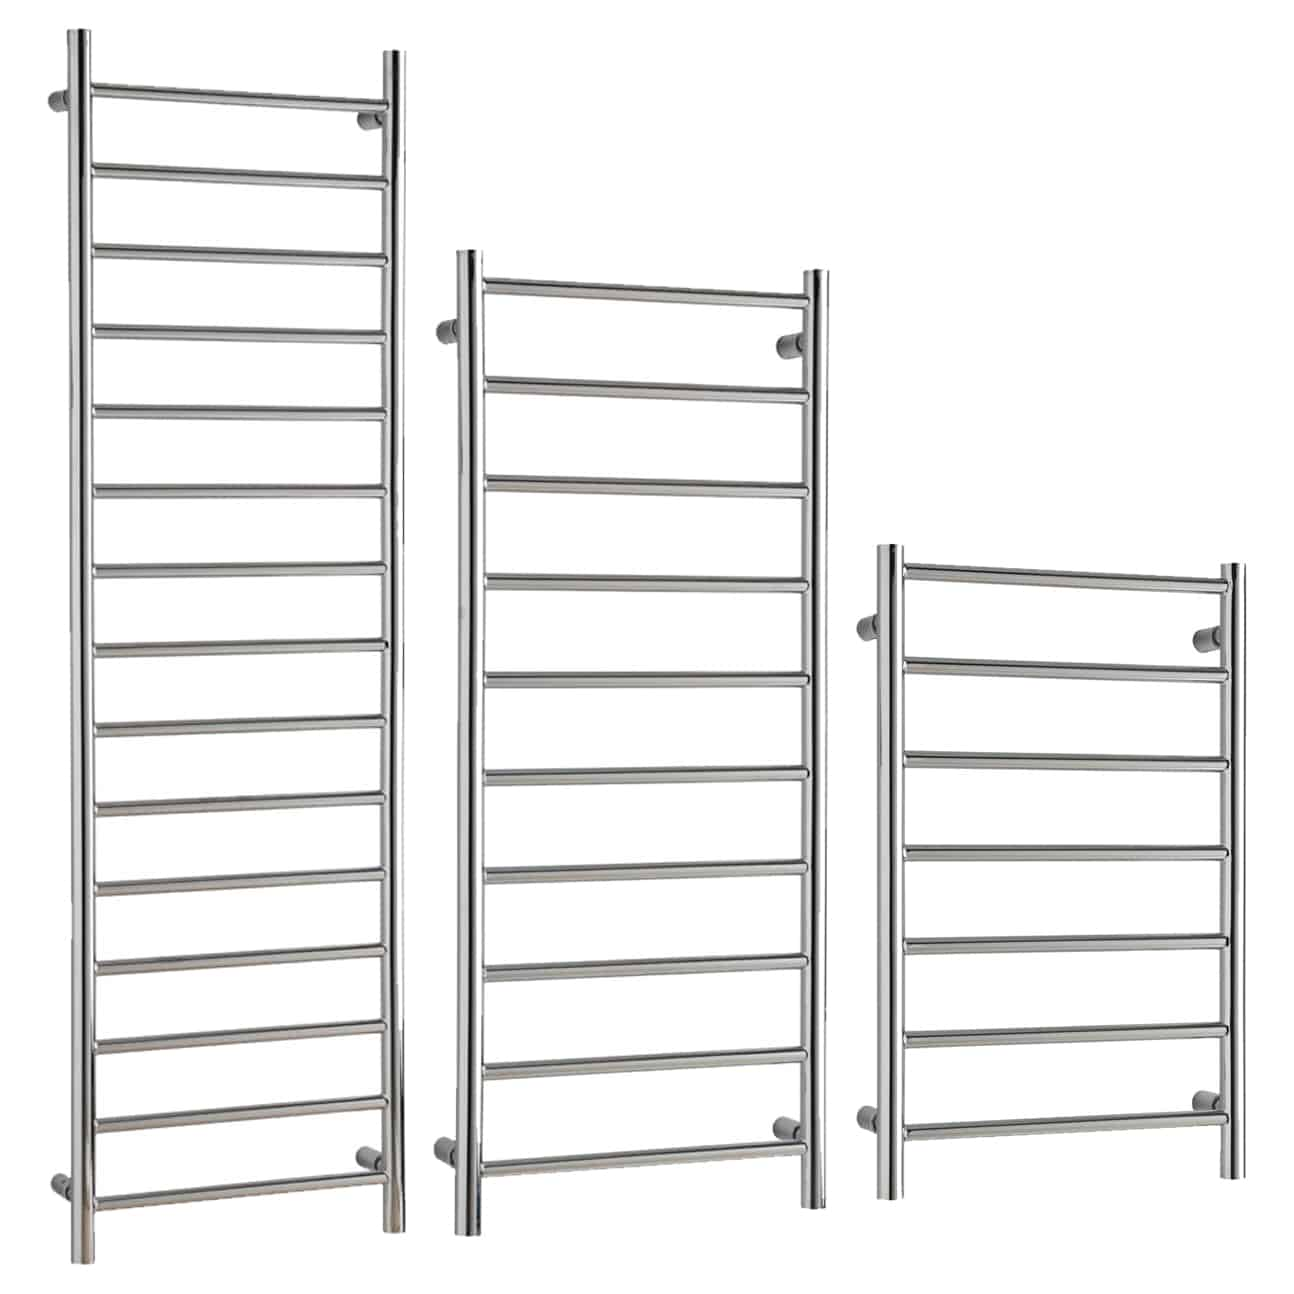 ALPINE Modern Heated Towel Rail / Warmer / Radiator, Chrome – Central Heating